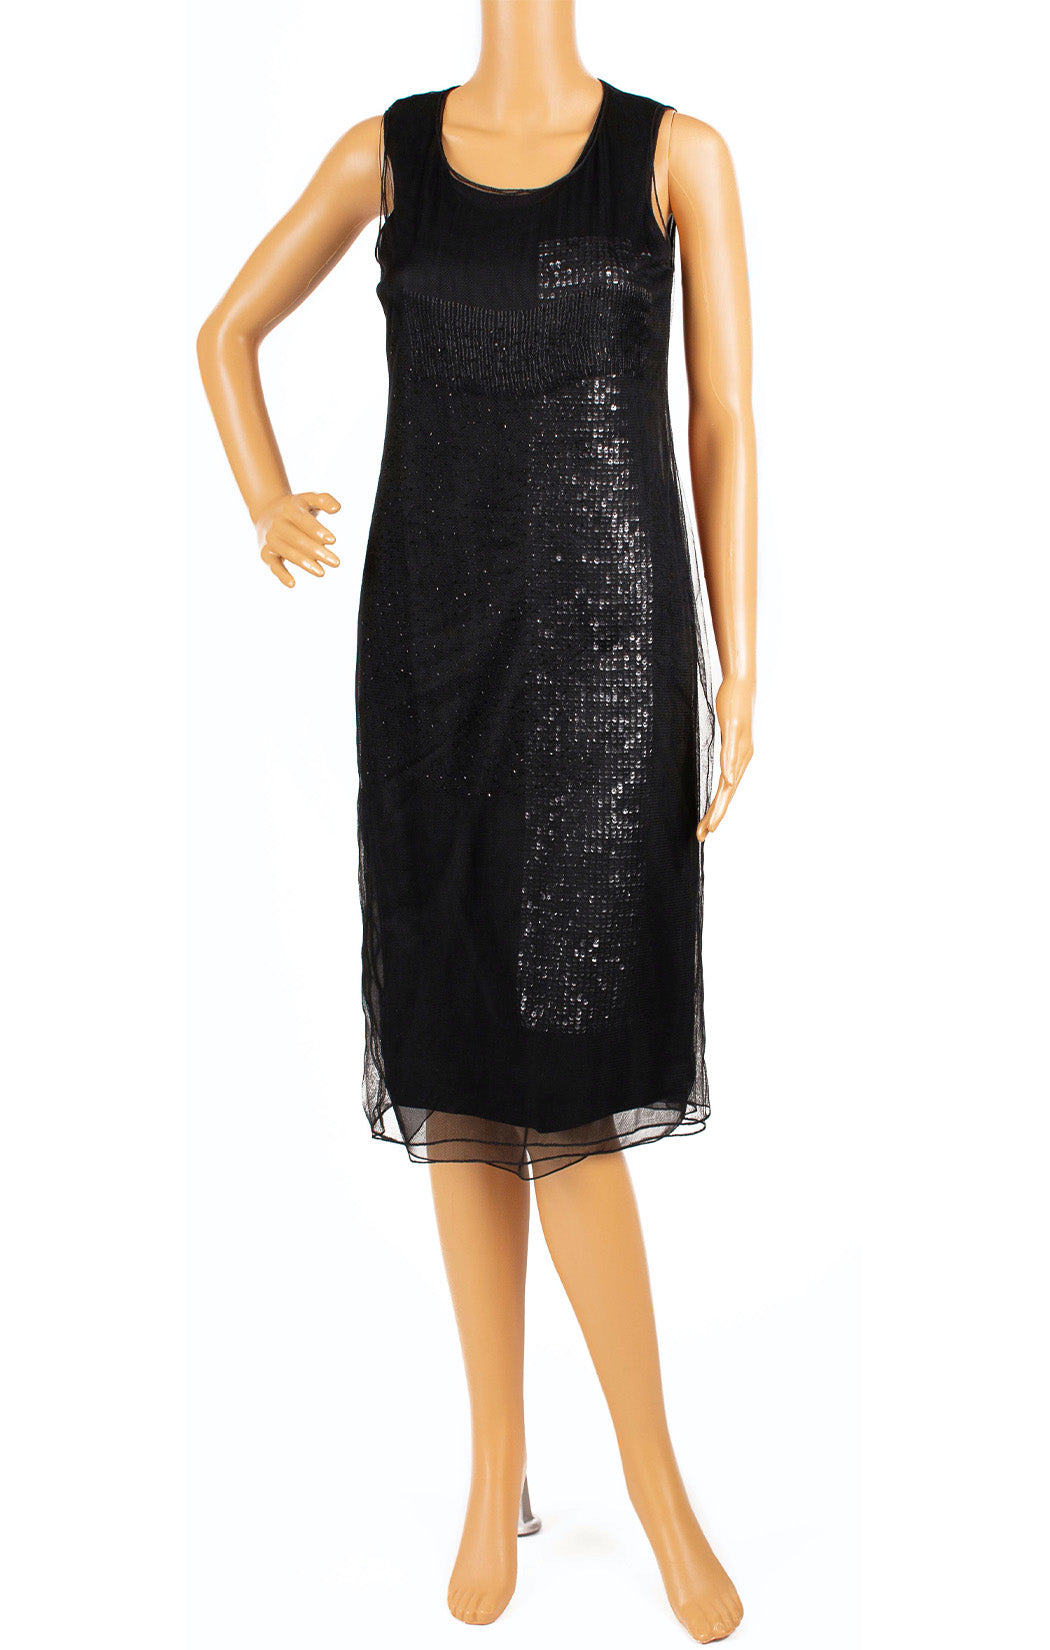 Front view of DONNA KARAN Dress Size: 4